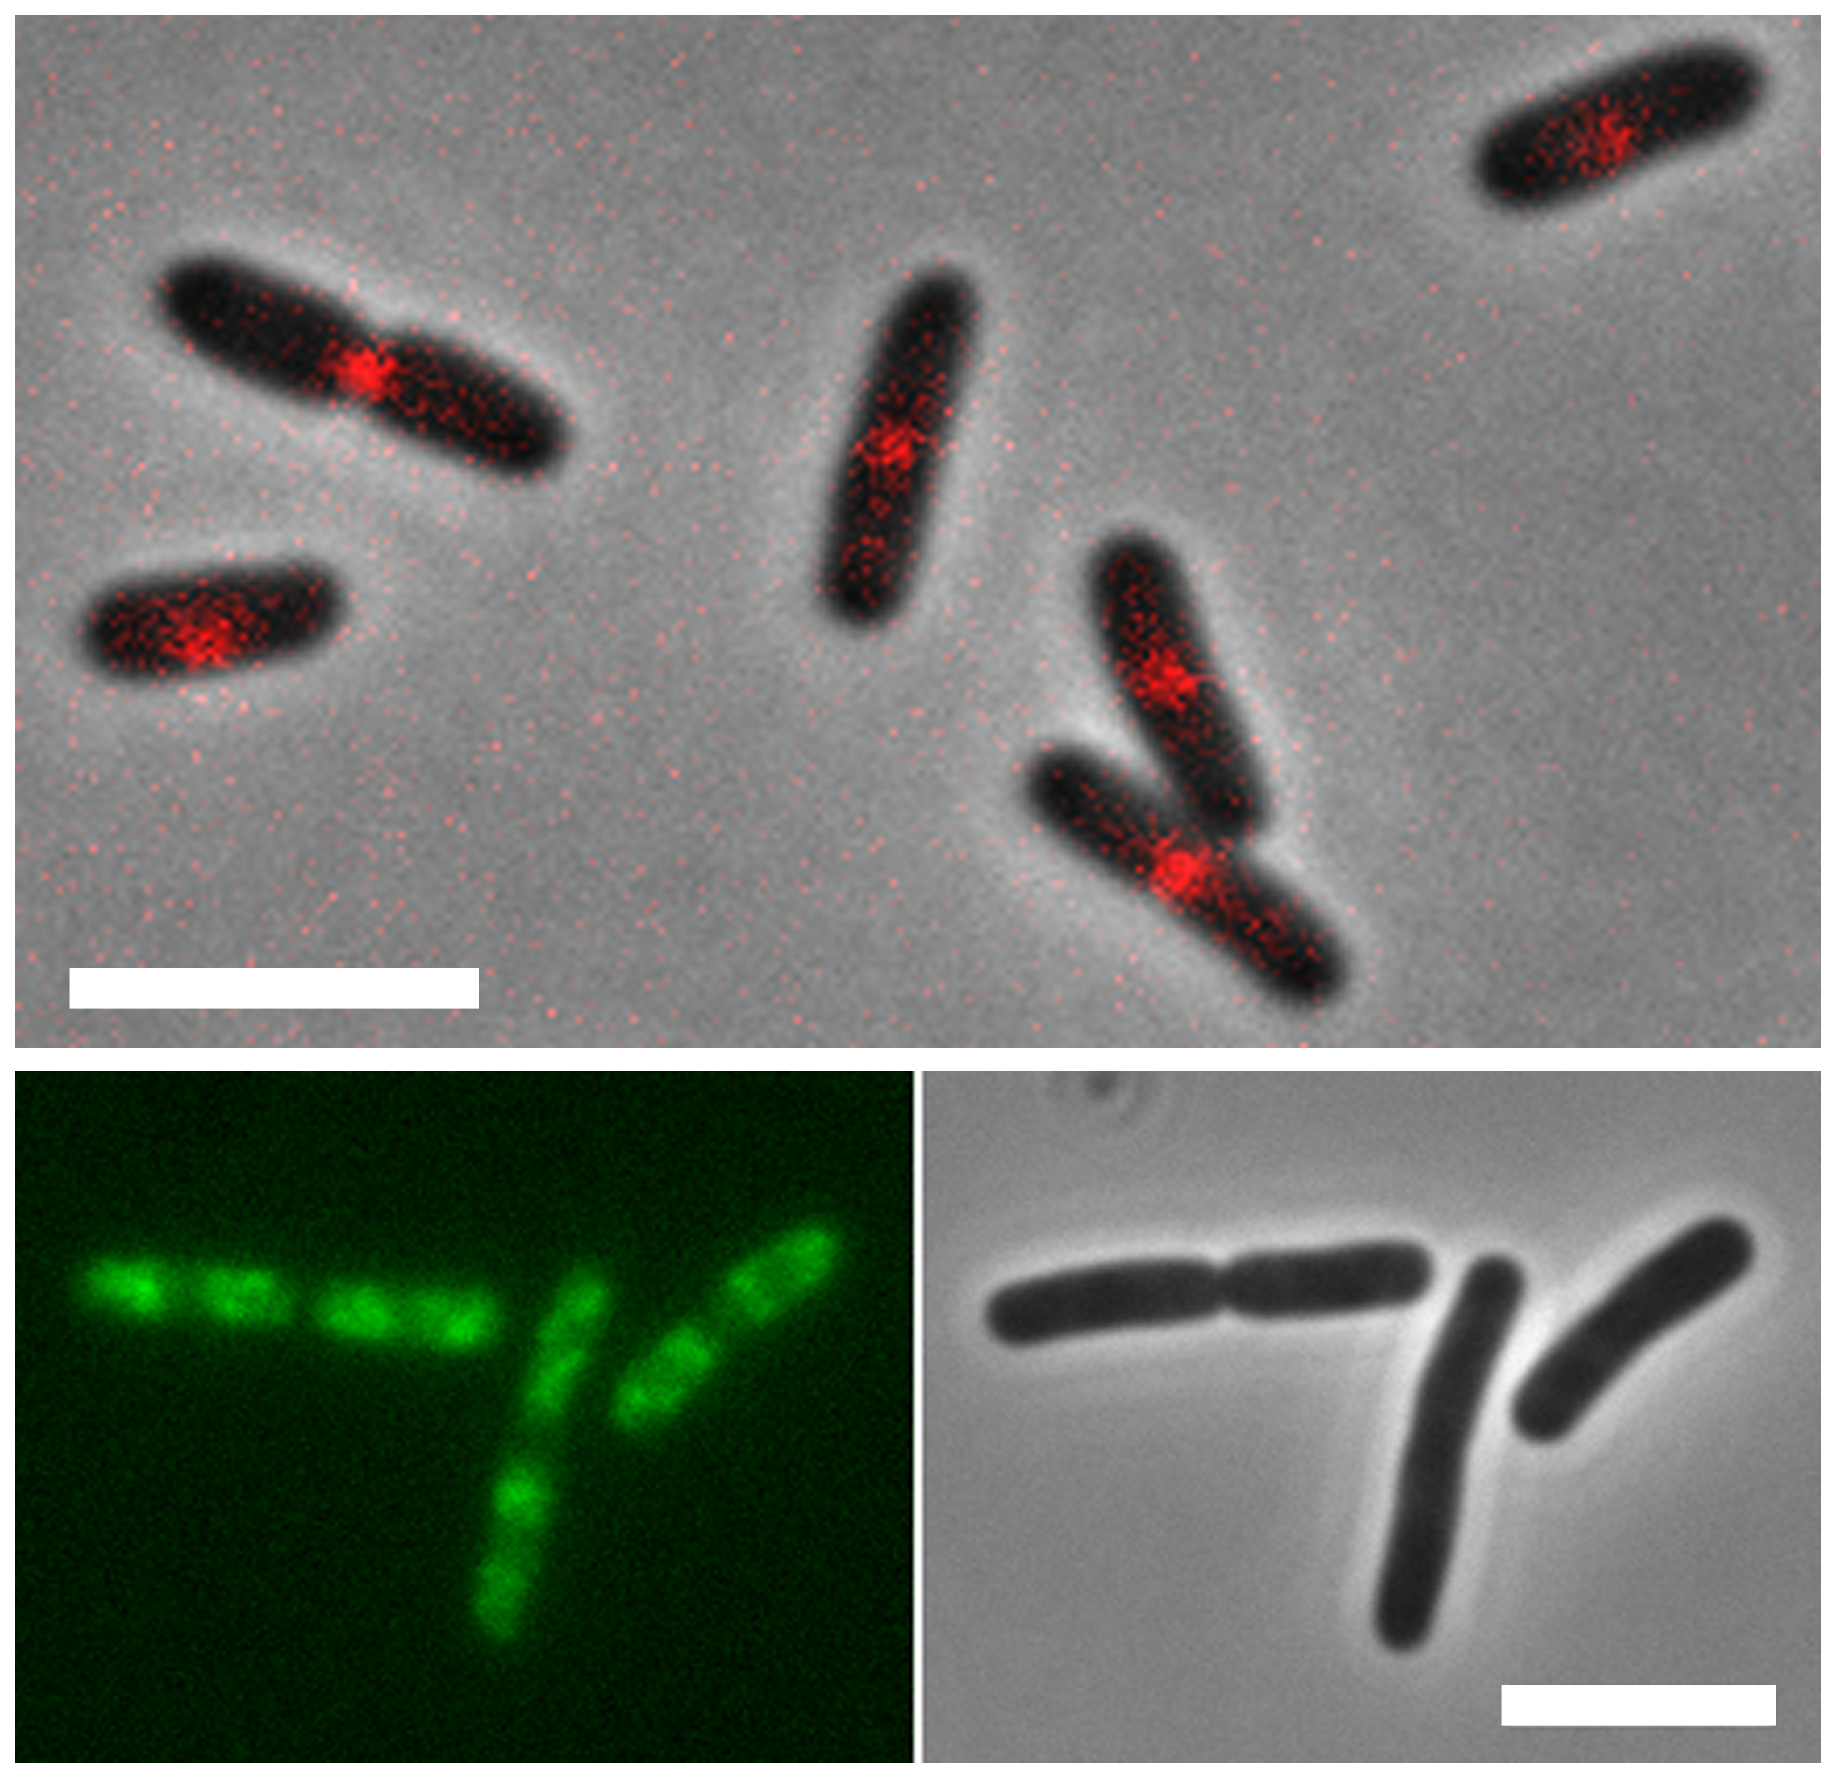 Localization of MatP and SlmA on the <i>E. coli</i> chromosome.